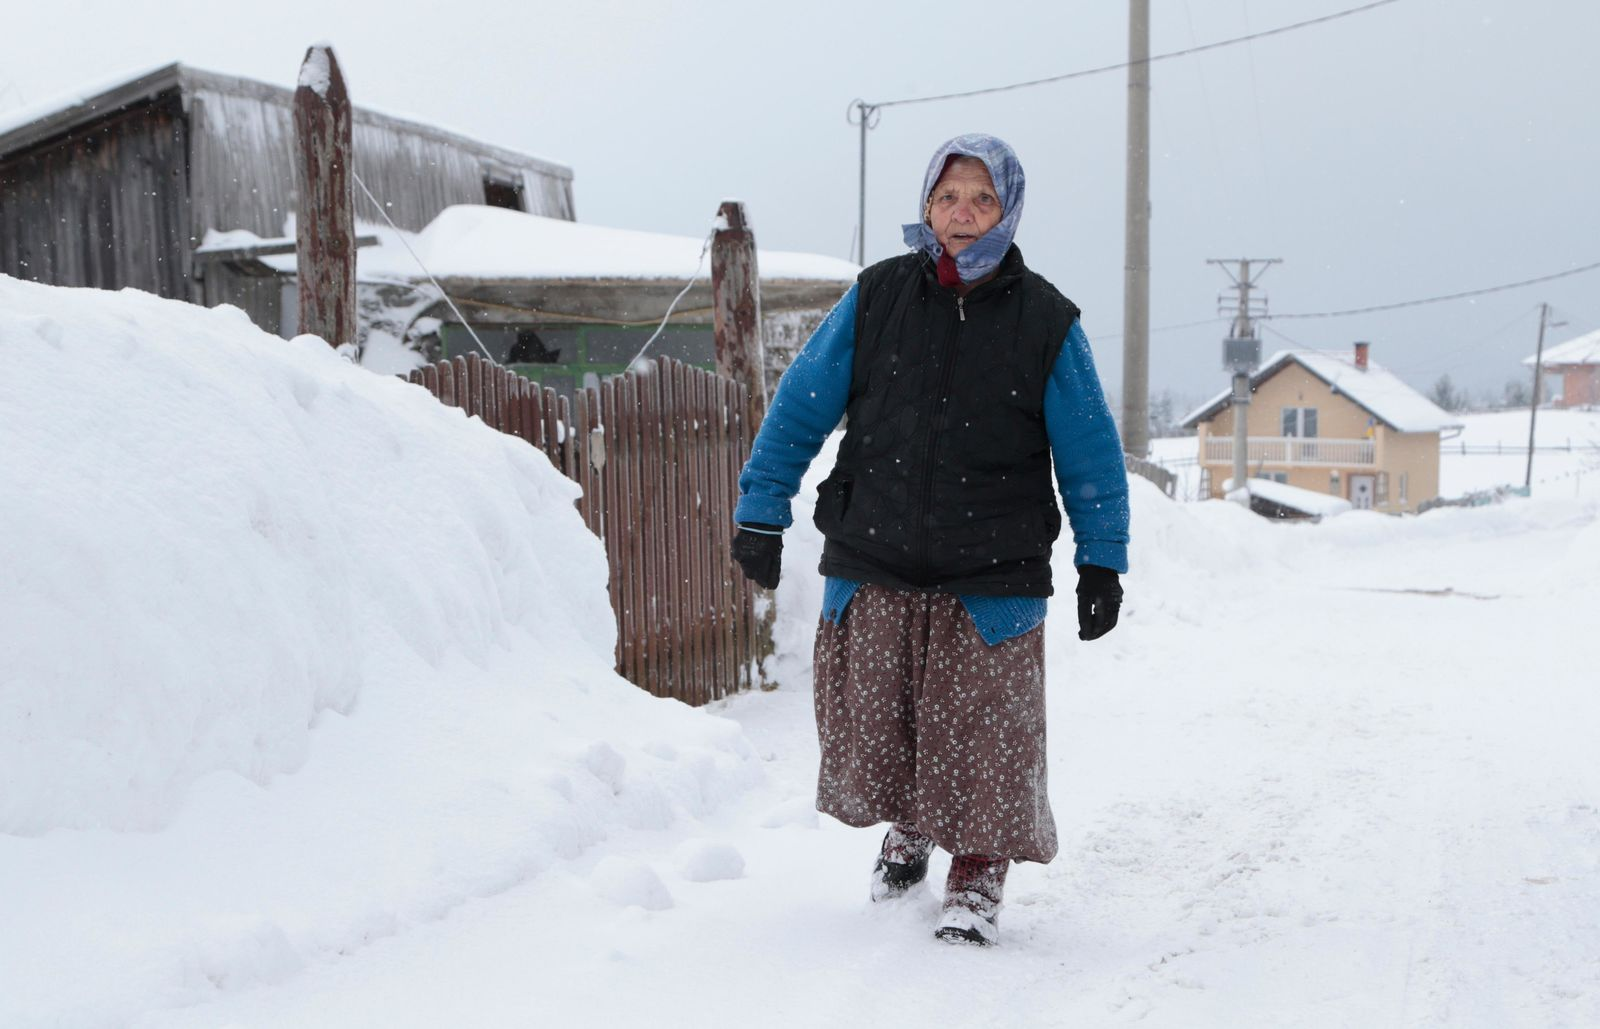 A Bosnian woman walks on a snow covered road in a remote village near Kladanj, 80 kms north of Sarajevo, Bosnia, Friday, Jan. 11. .(AP Photo/Amel Emric)